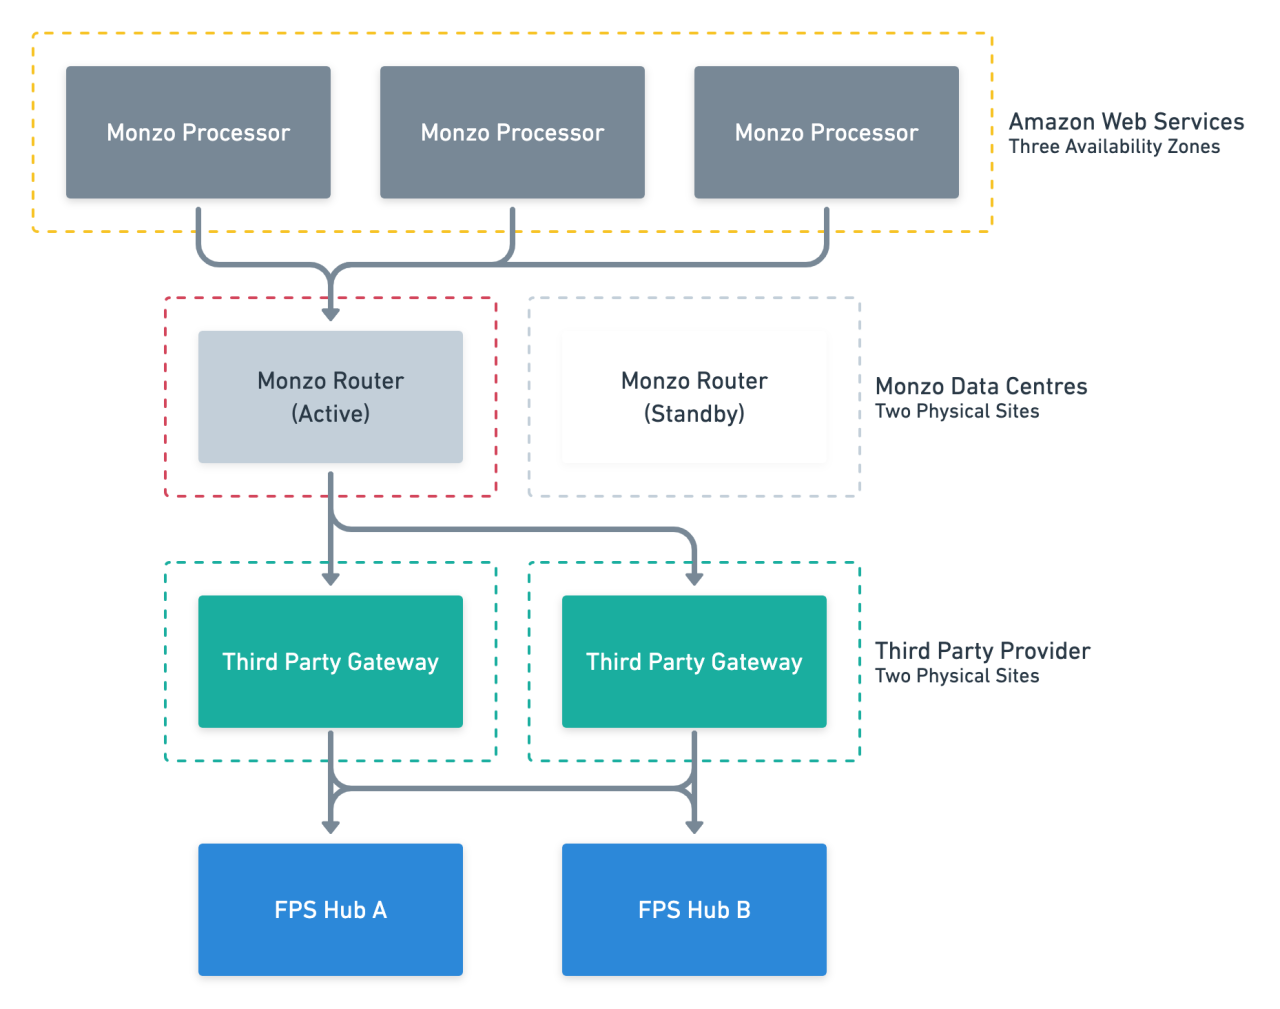 Fig 3. Our previous setup with the third party gateway